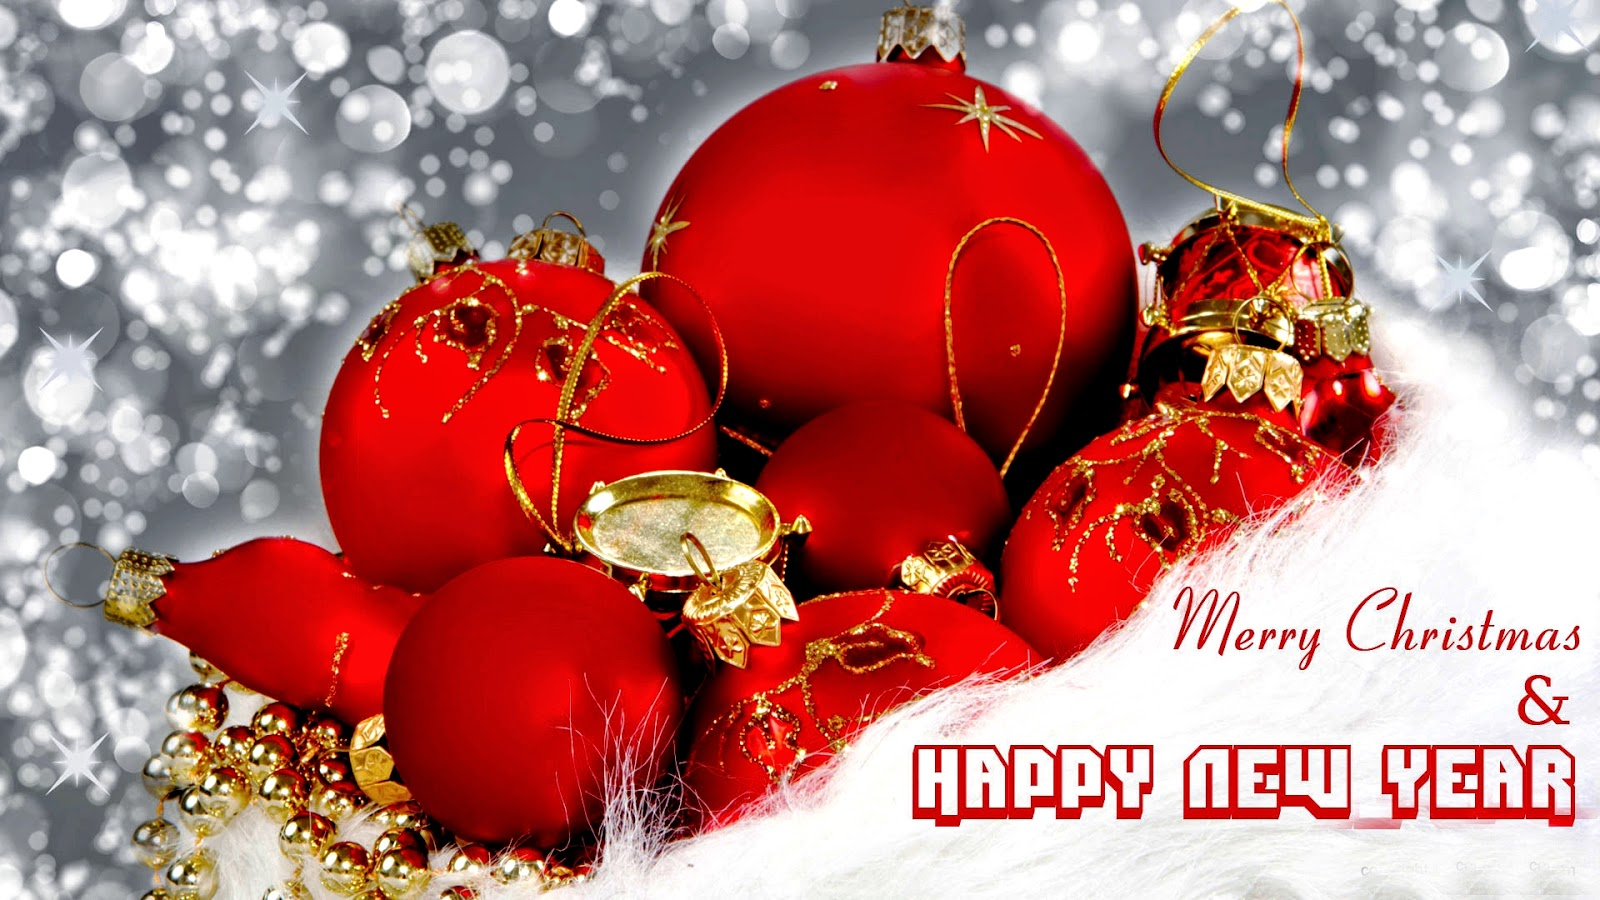 Merry-Christmas-and-happy-new-year-red-baubles-with-silver-snow-background-hd-pictures.jpg